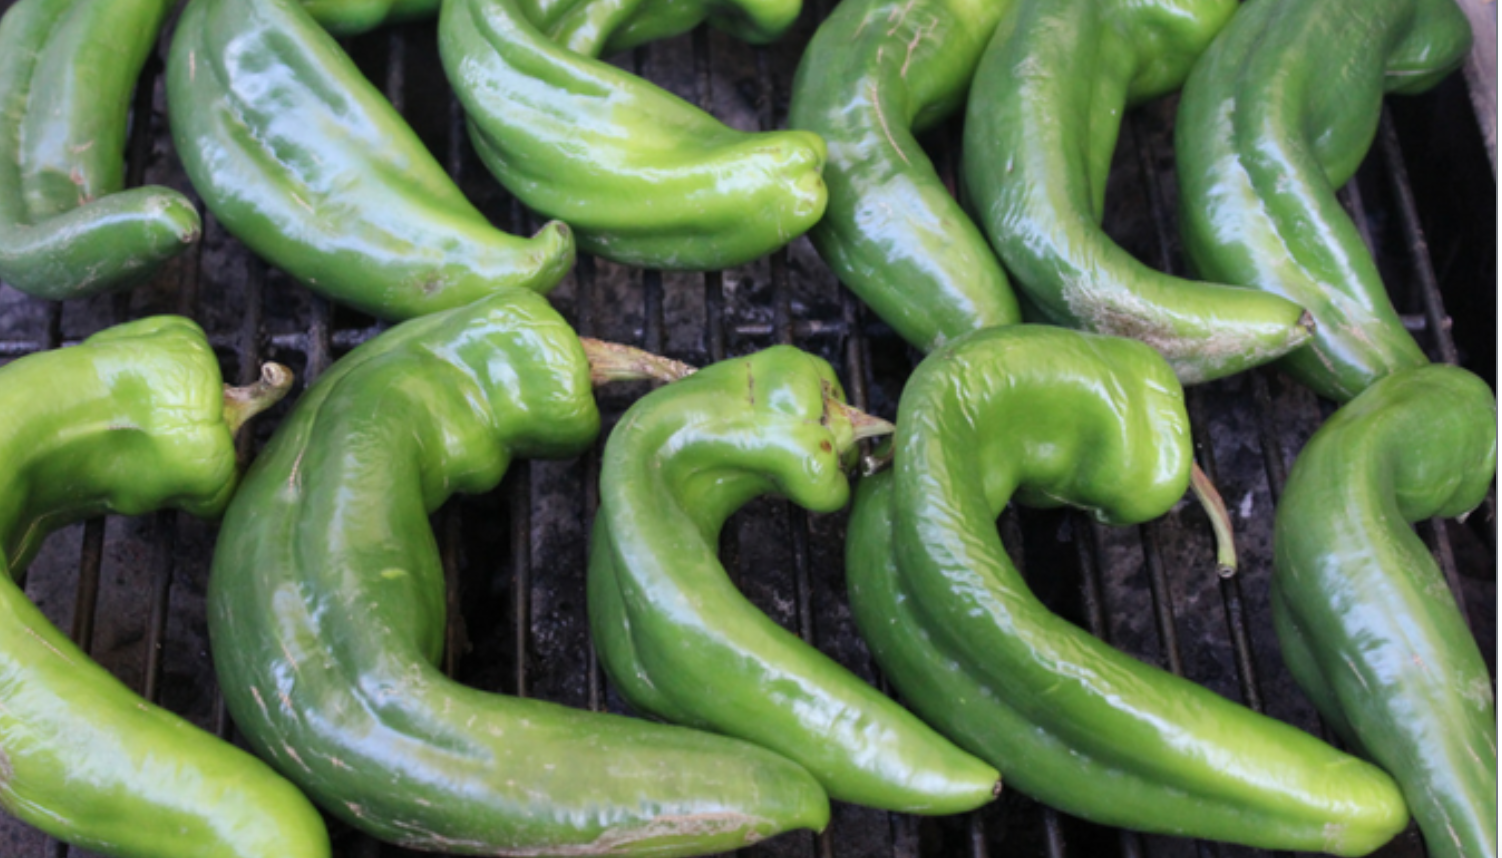 Hatch Chiles on the Grill